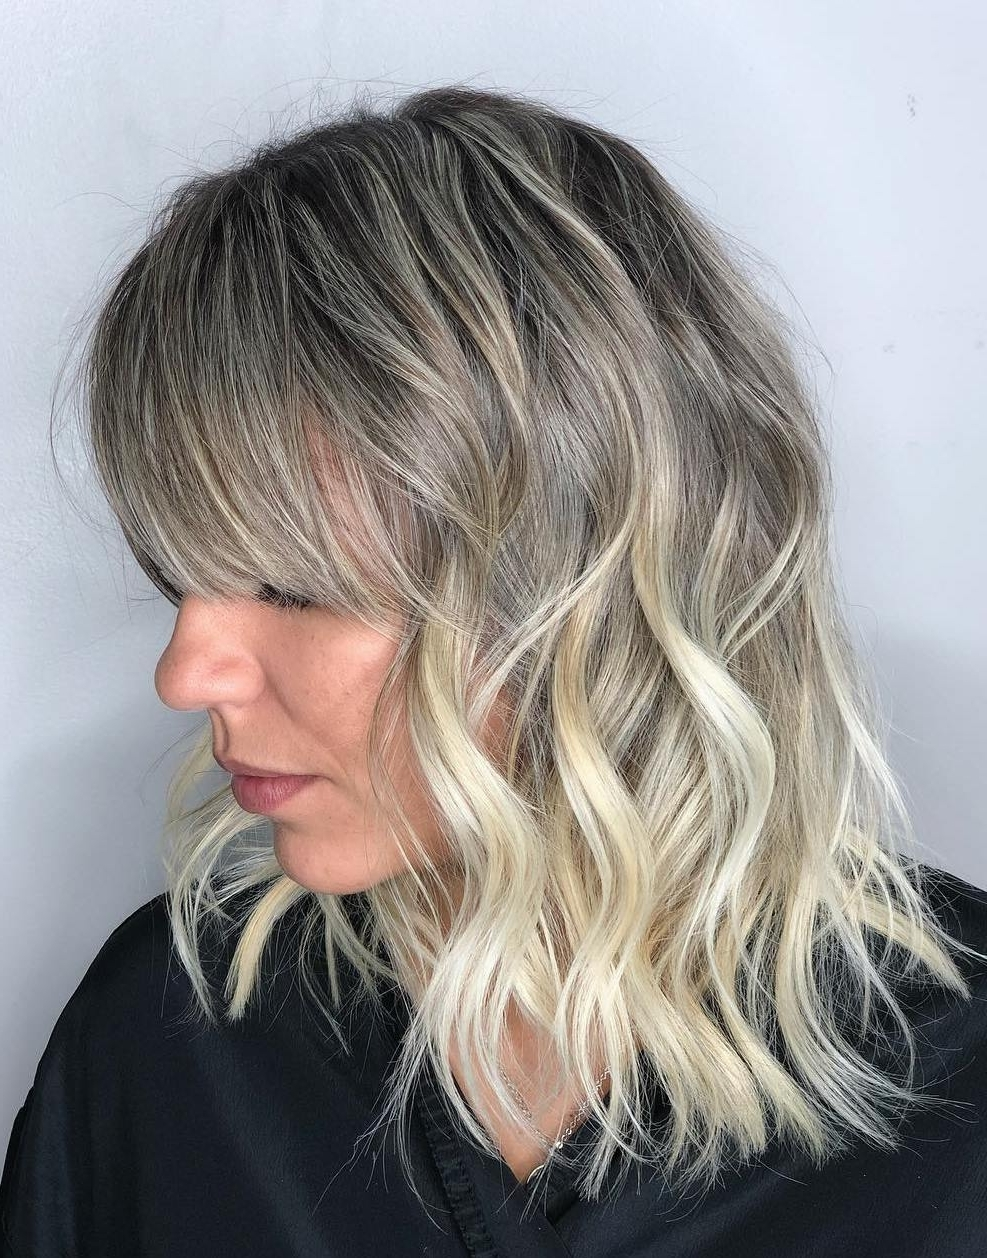 50 Head Turning Hairstyles For Thin Hair To Flaunt In 2020 40+ Stylish Medium Thin Layered Hairstyles